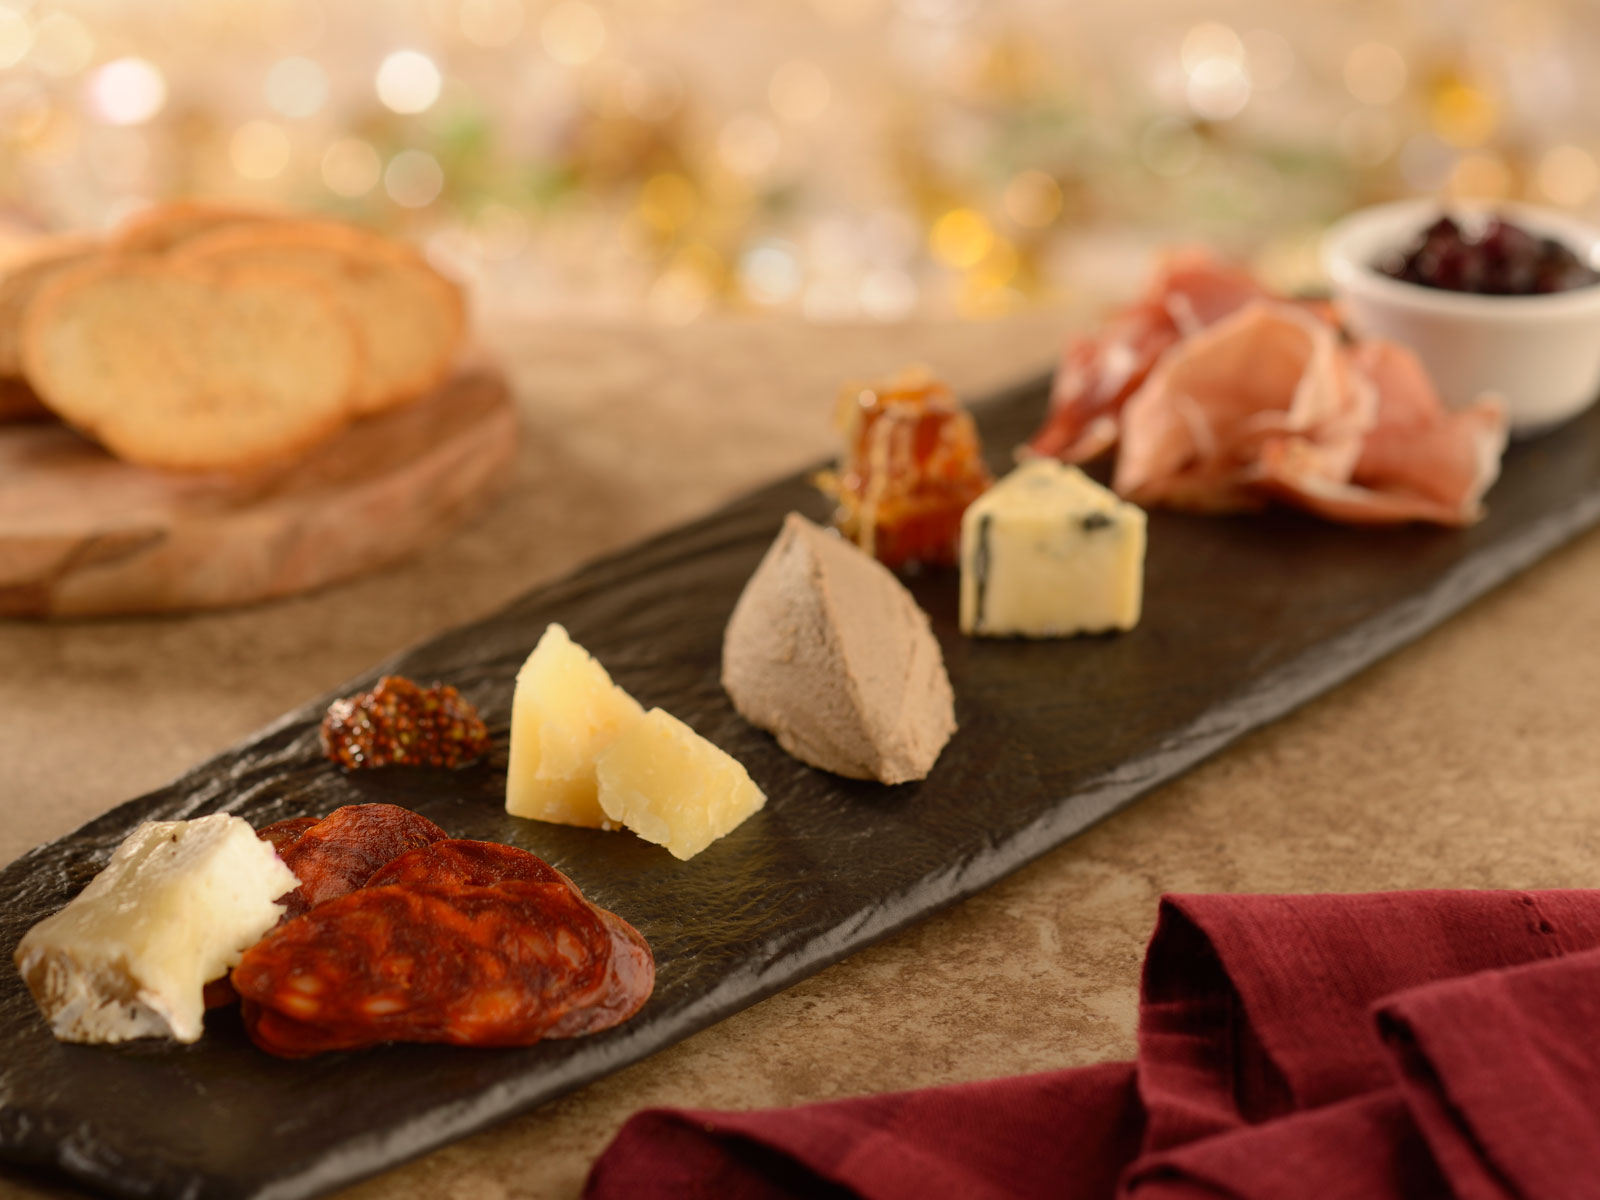 Disney World's 'Beauty and the Beast'-Themed Restaurant Menu Gets a Makeover This Summer disneyworld-be-our-guest-cheeses-FT-BLOG0218